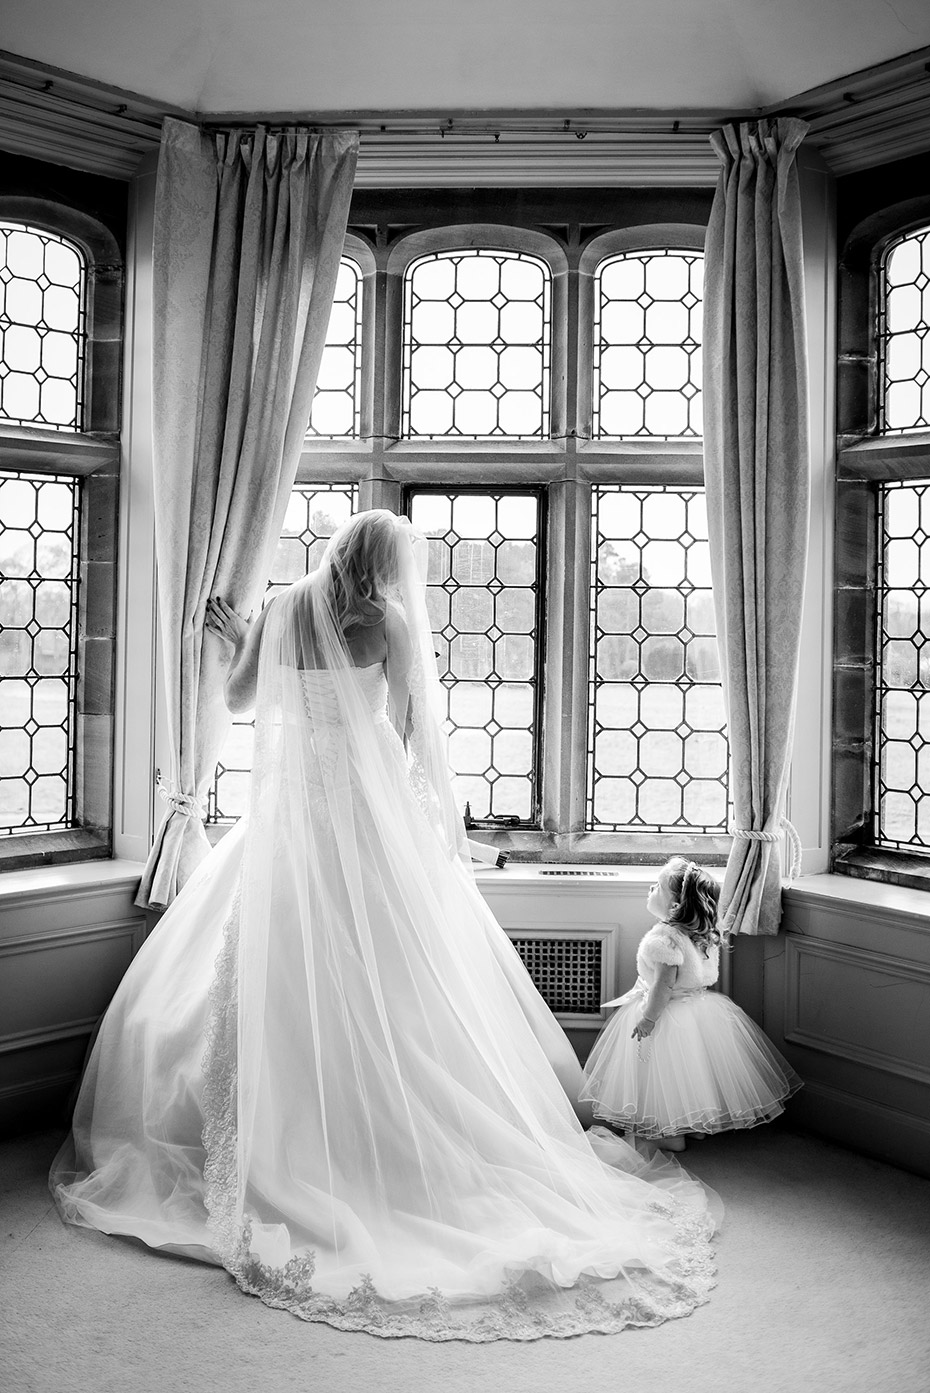 Thornton Manor Weddingm Photographer